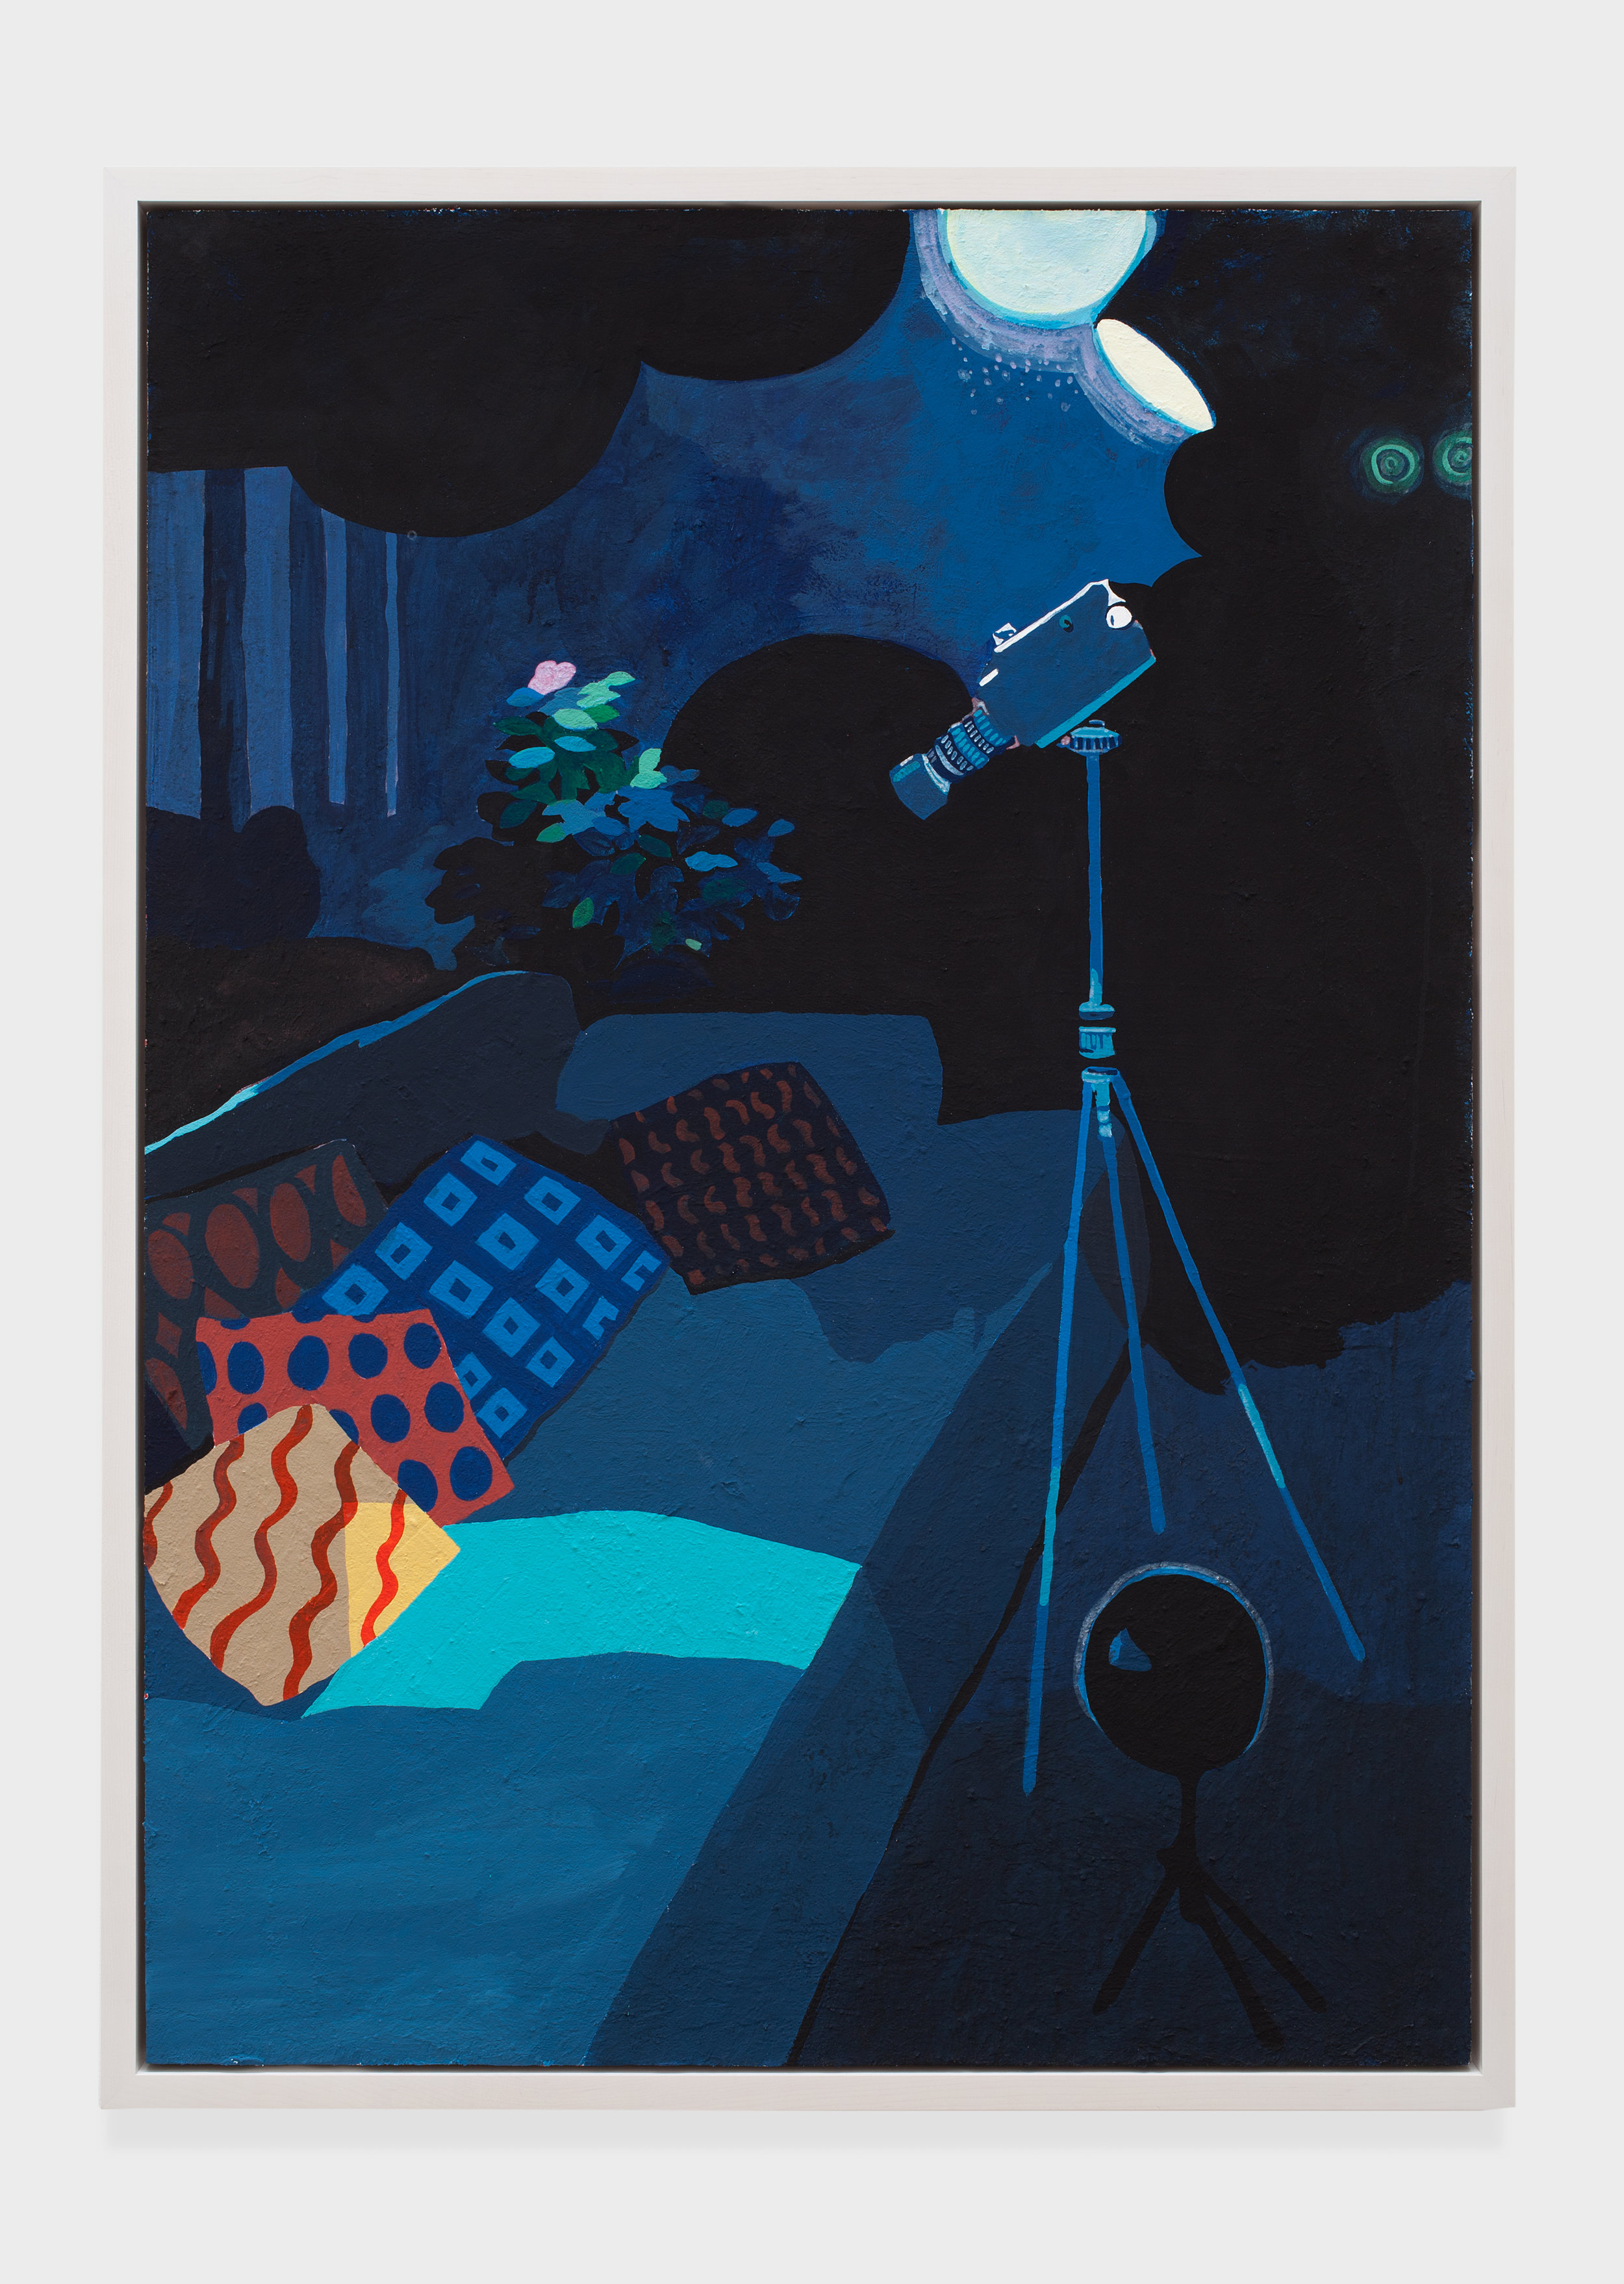 Blue Camera, 2014 acrylic and flashe on canvas 149 x 108,6 cm - 58 5/8 x 42 3/4 inches